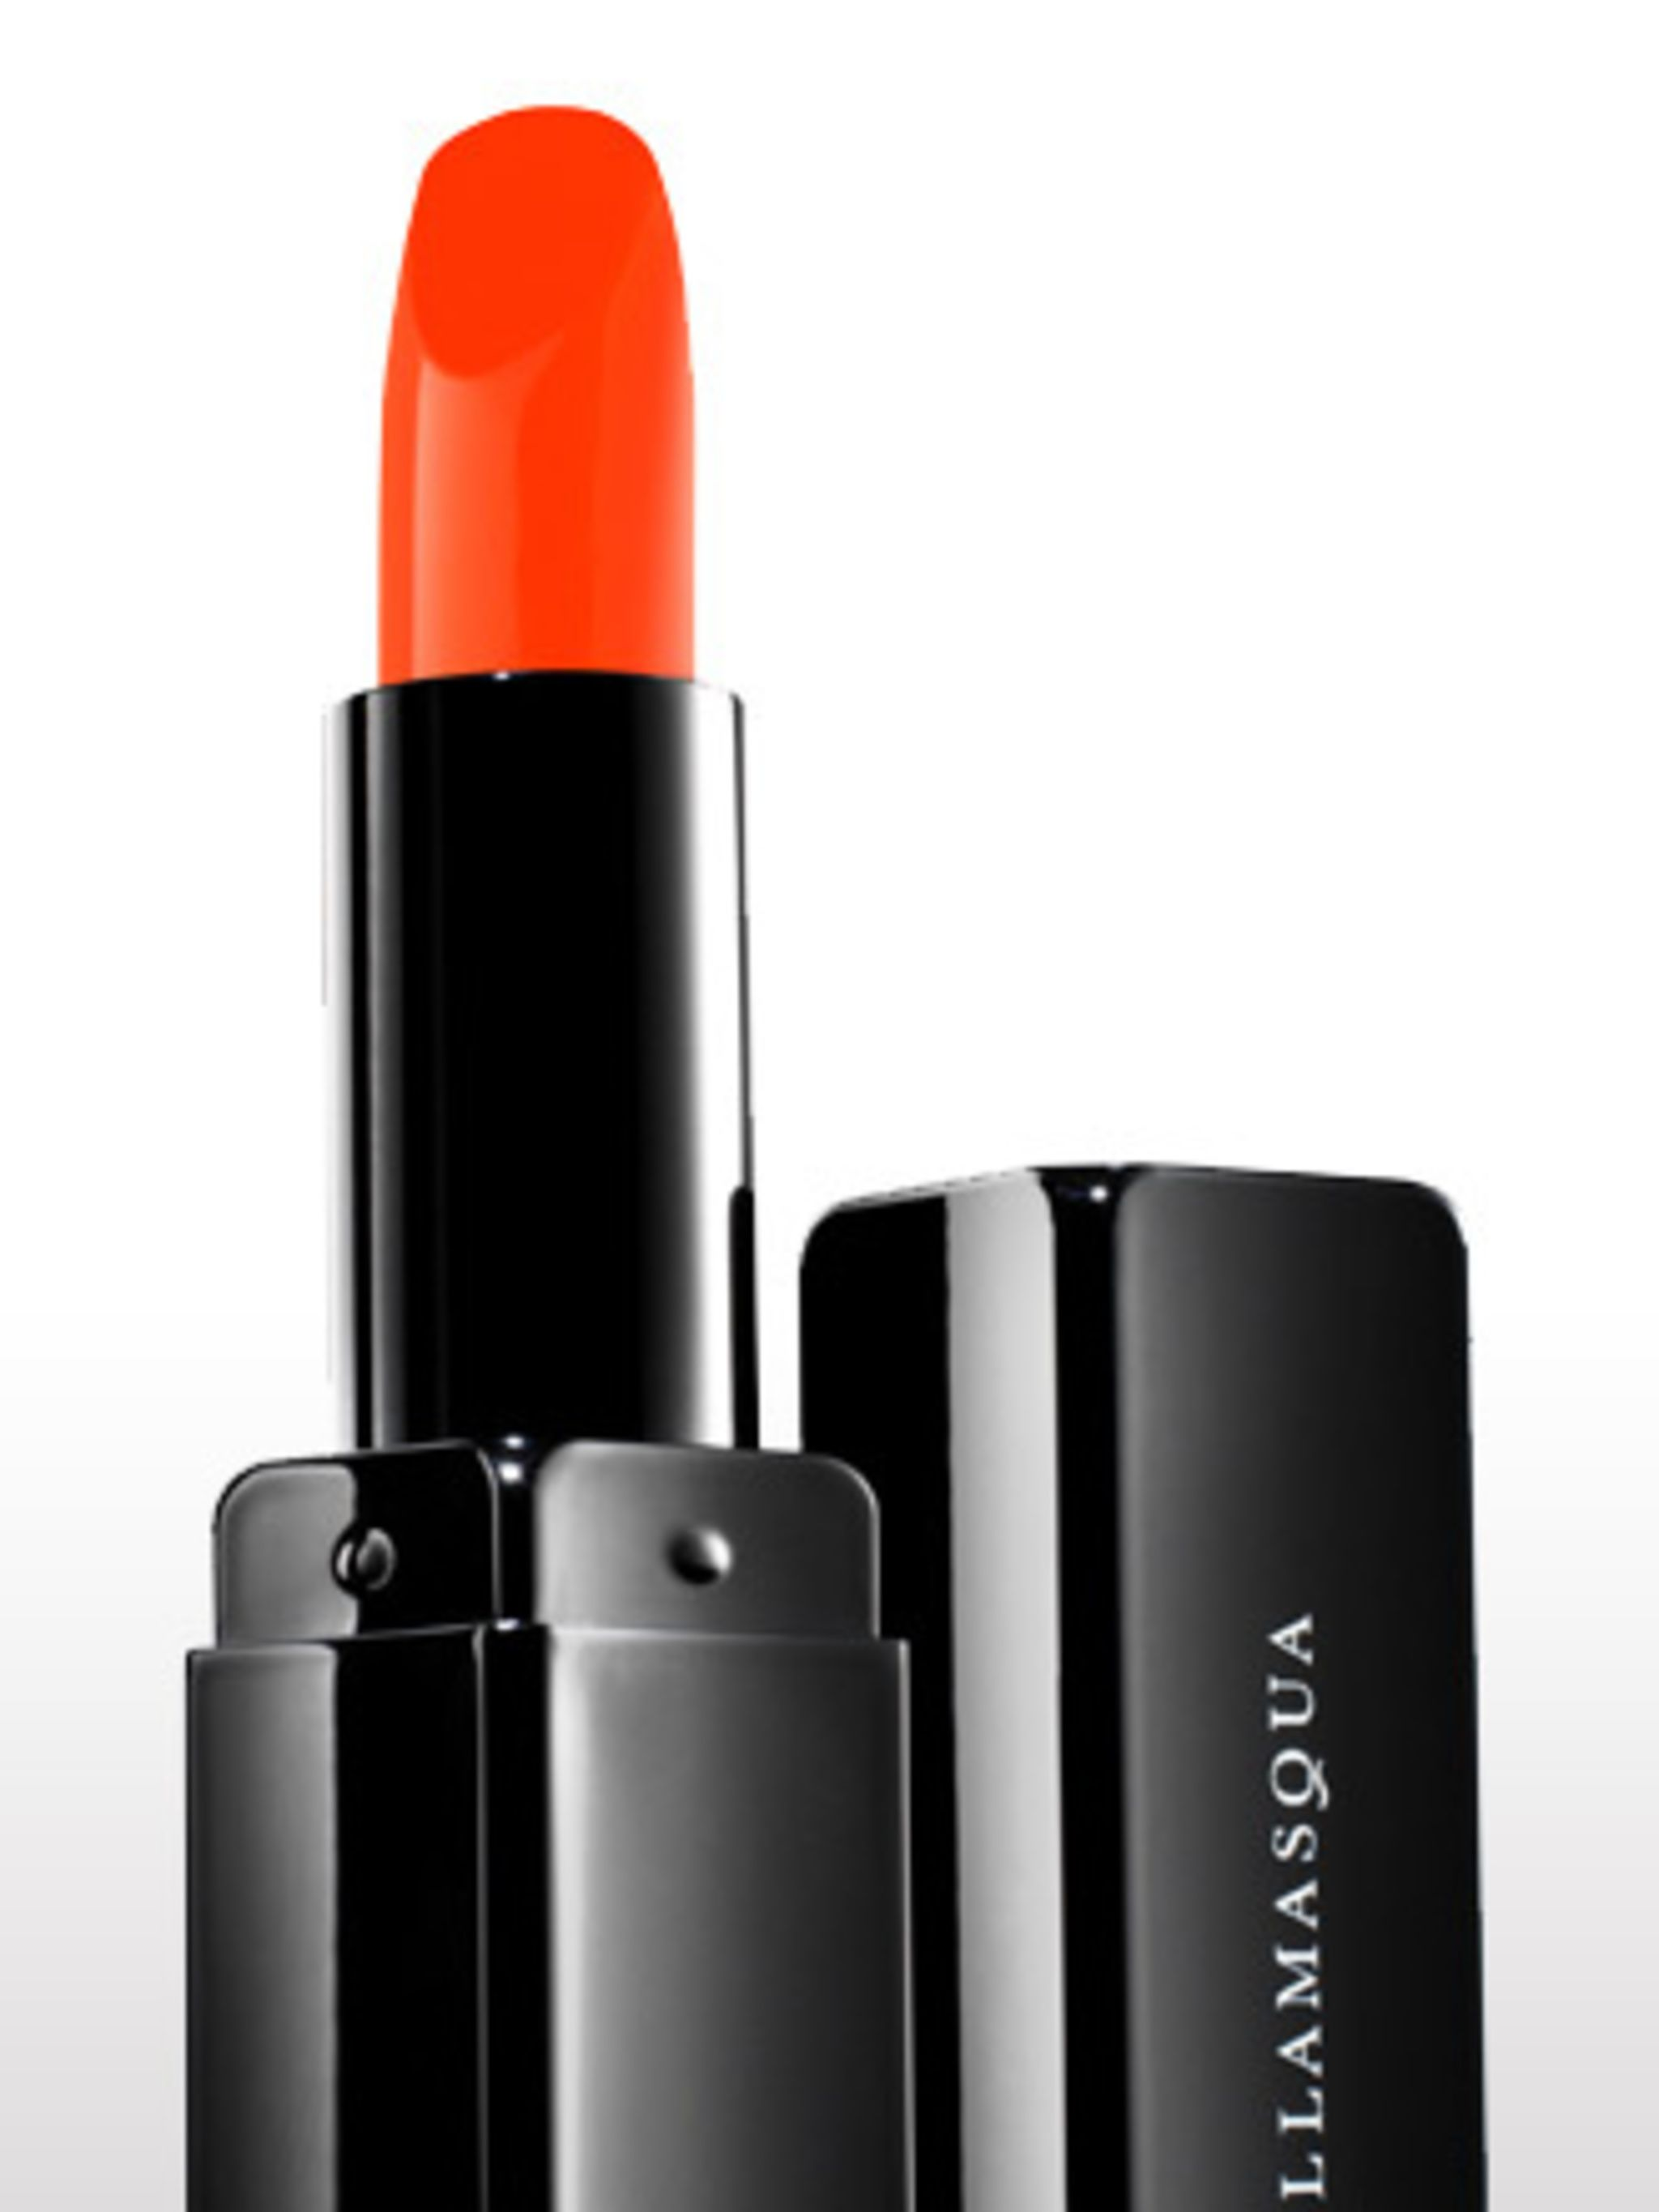 "<p>'This punch of colour is perfect for a bit of a statement, and right on trend this season. The texture is really hydrating and super tidy.' Emma Smith, Beauty Director <a href=""http://www.illamasqua.com/"">Illamasqua</a> Lipstick in Flare, £15.50 </p>"